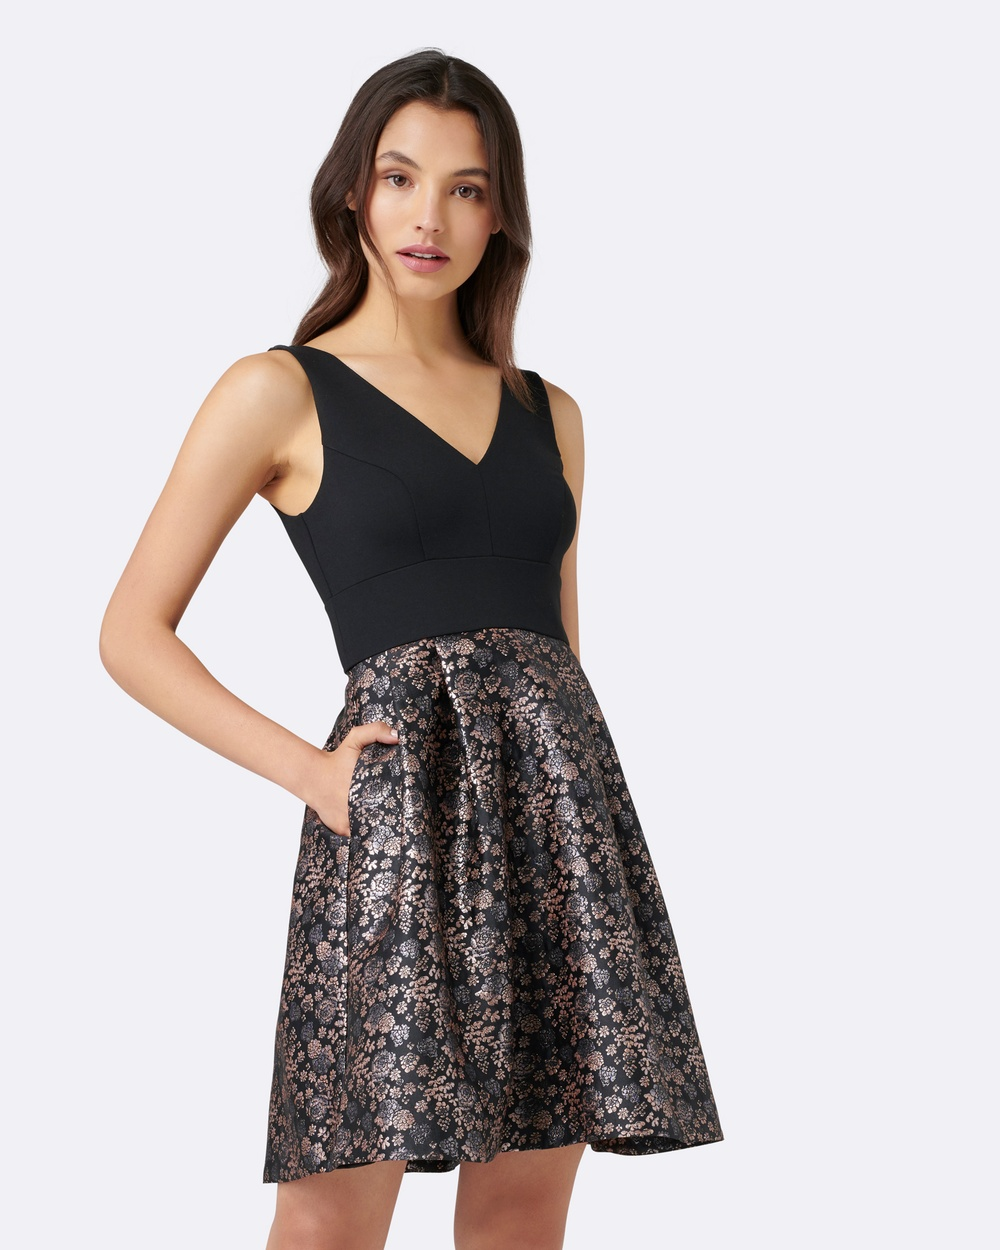 Forever New Bonnie Jacquard 2 in 1 Prom Bridesmaid Dresses Black Bonnie Jacquard 2-in-1 Prom